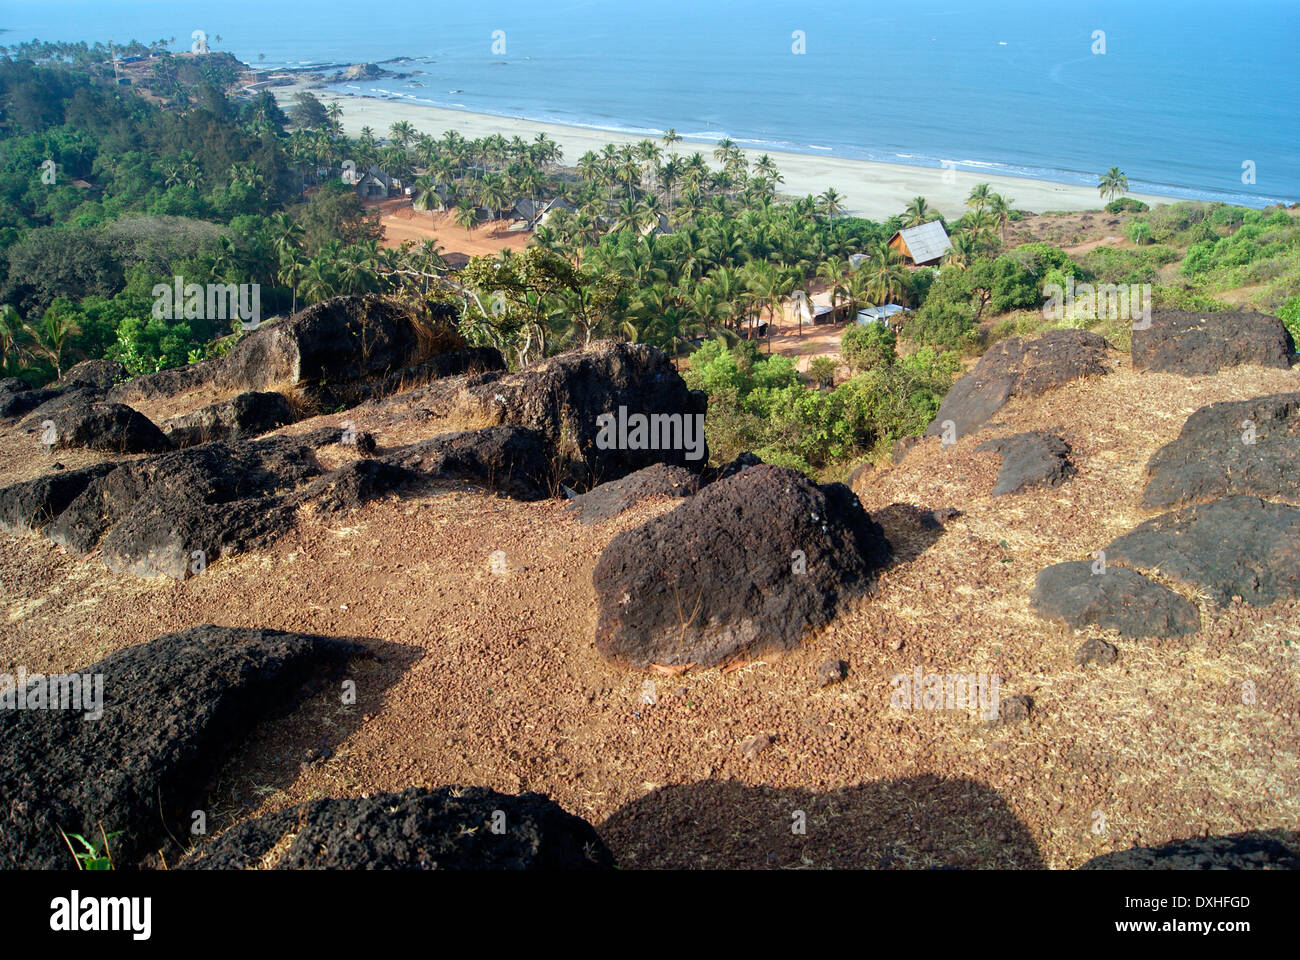 Goa Beach India Landscape view of Goa India from Rocky Cliff top - Stock Image